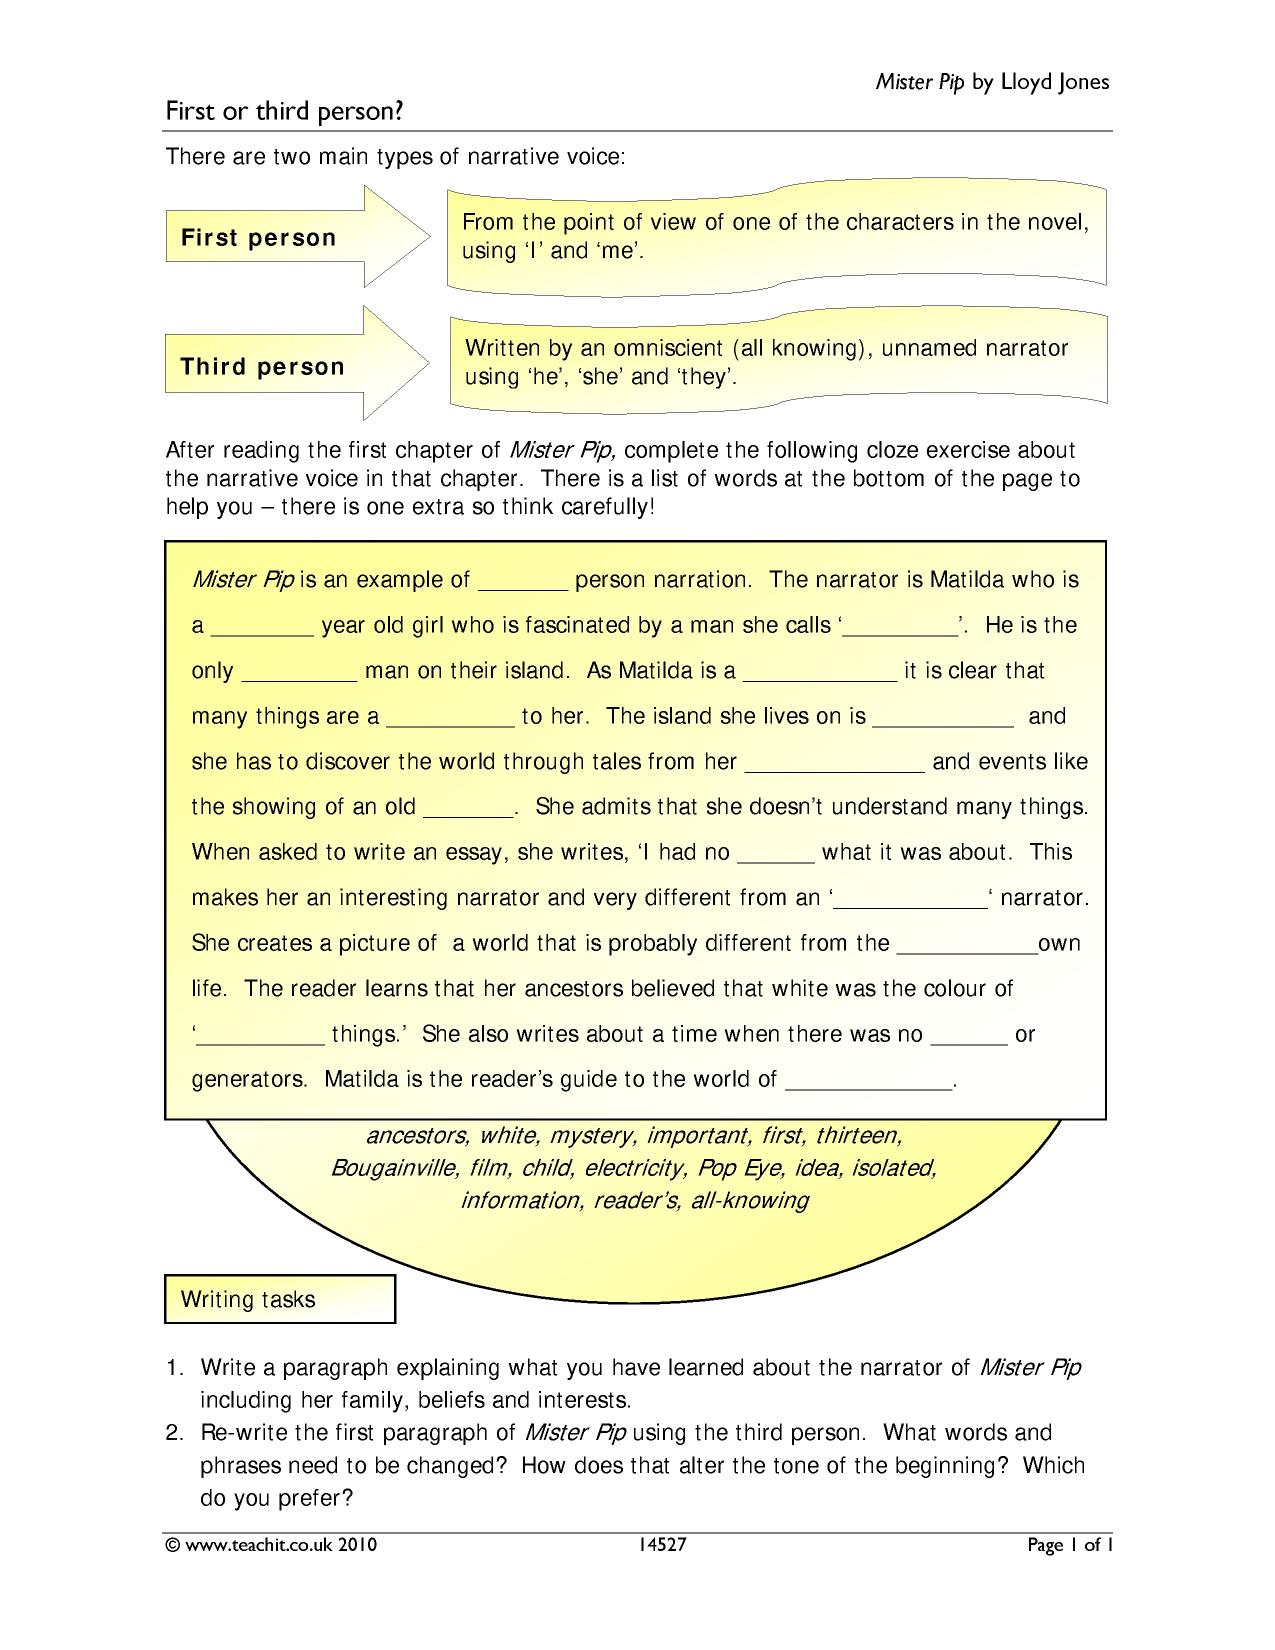 mister pip by lloyd jones ks4 prose key stage 4 resources 0 preview